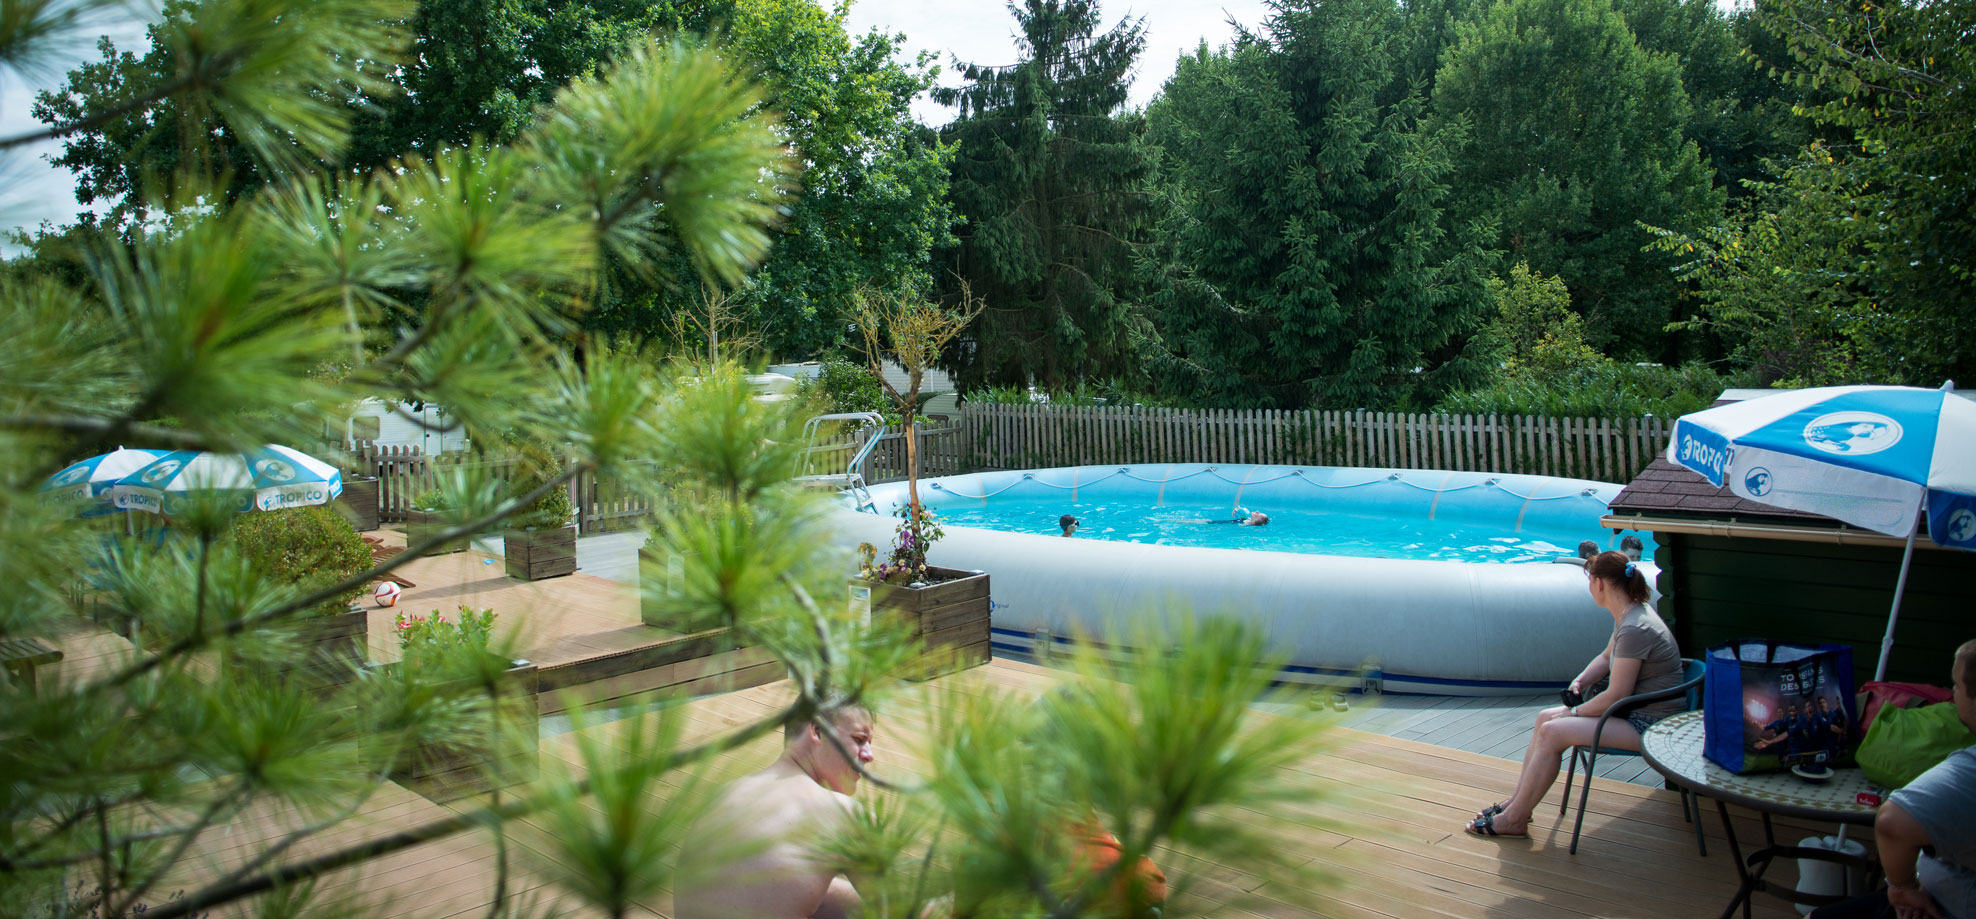 The Other Way Of Staying Overnight Near Paris - Camping De ... destiné Piscine De Bresles